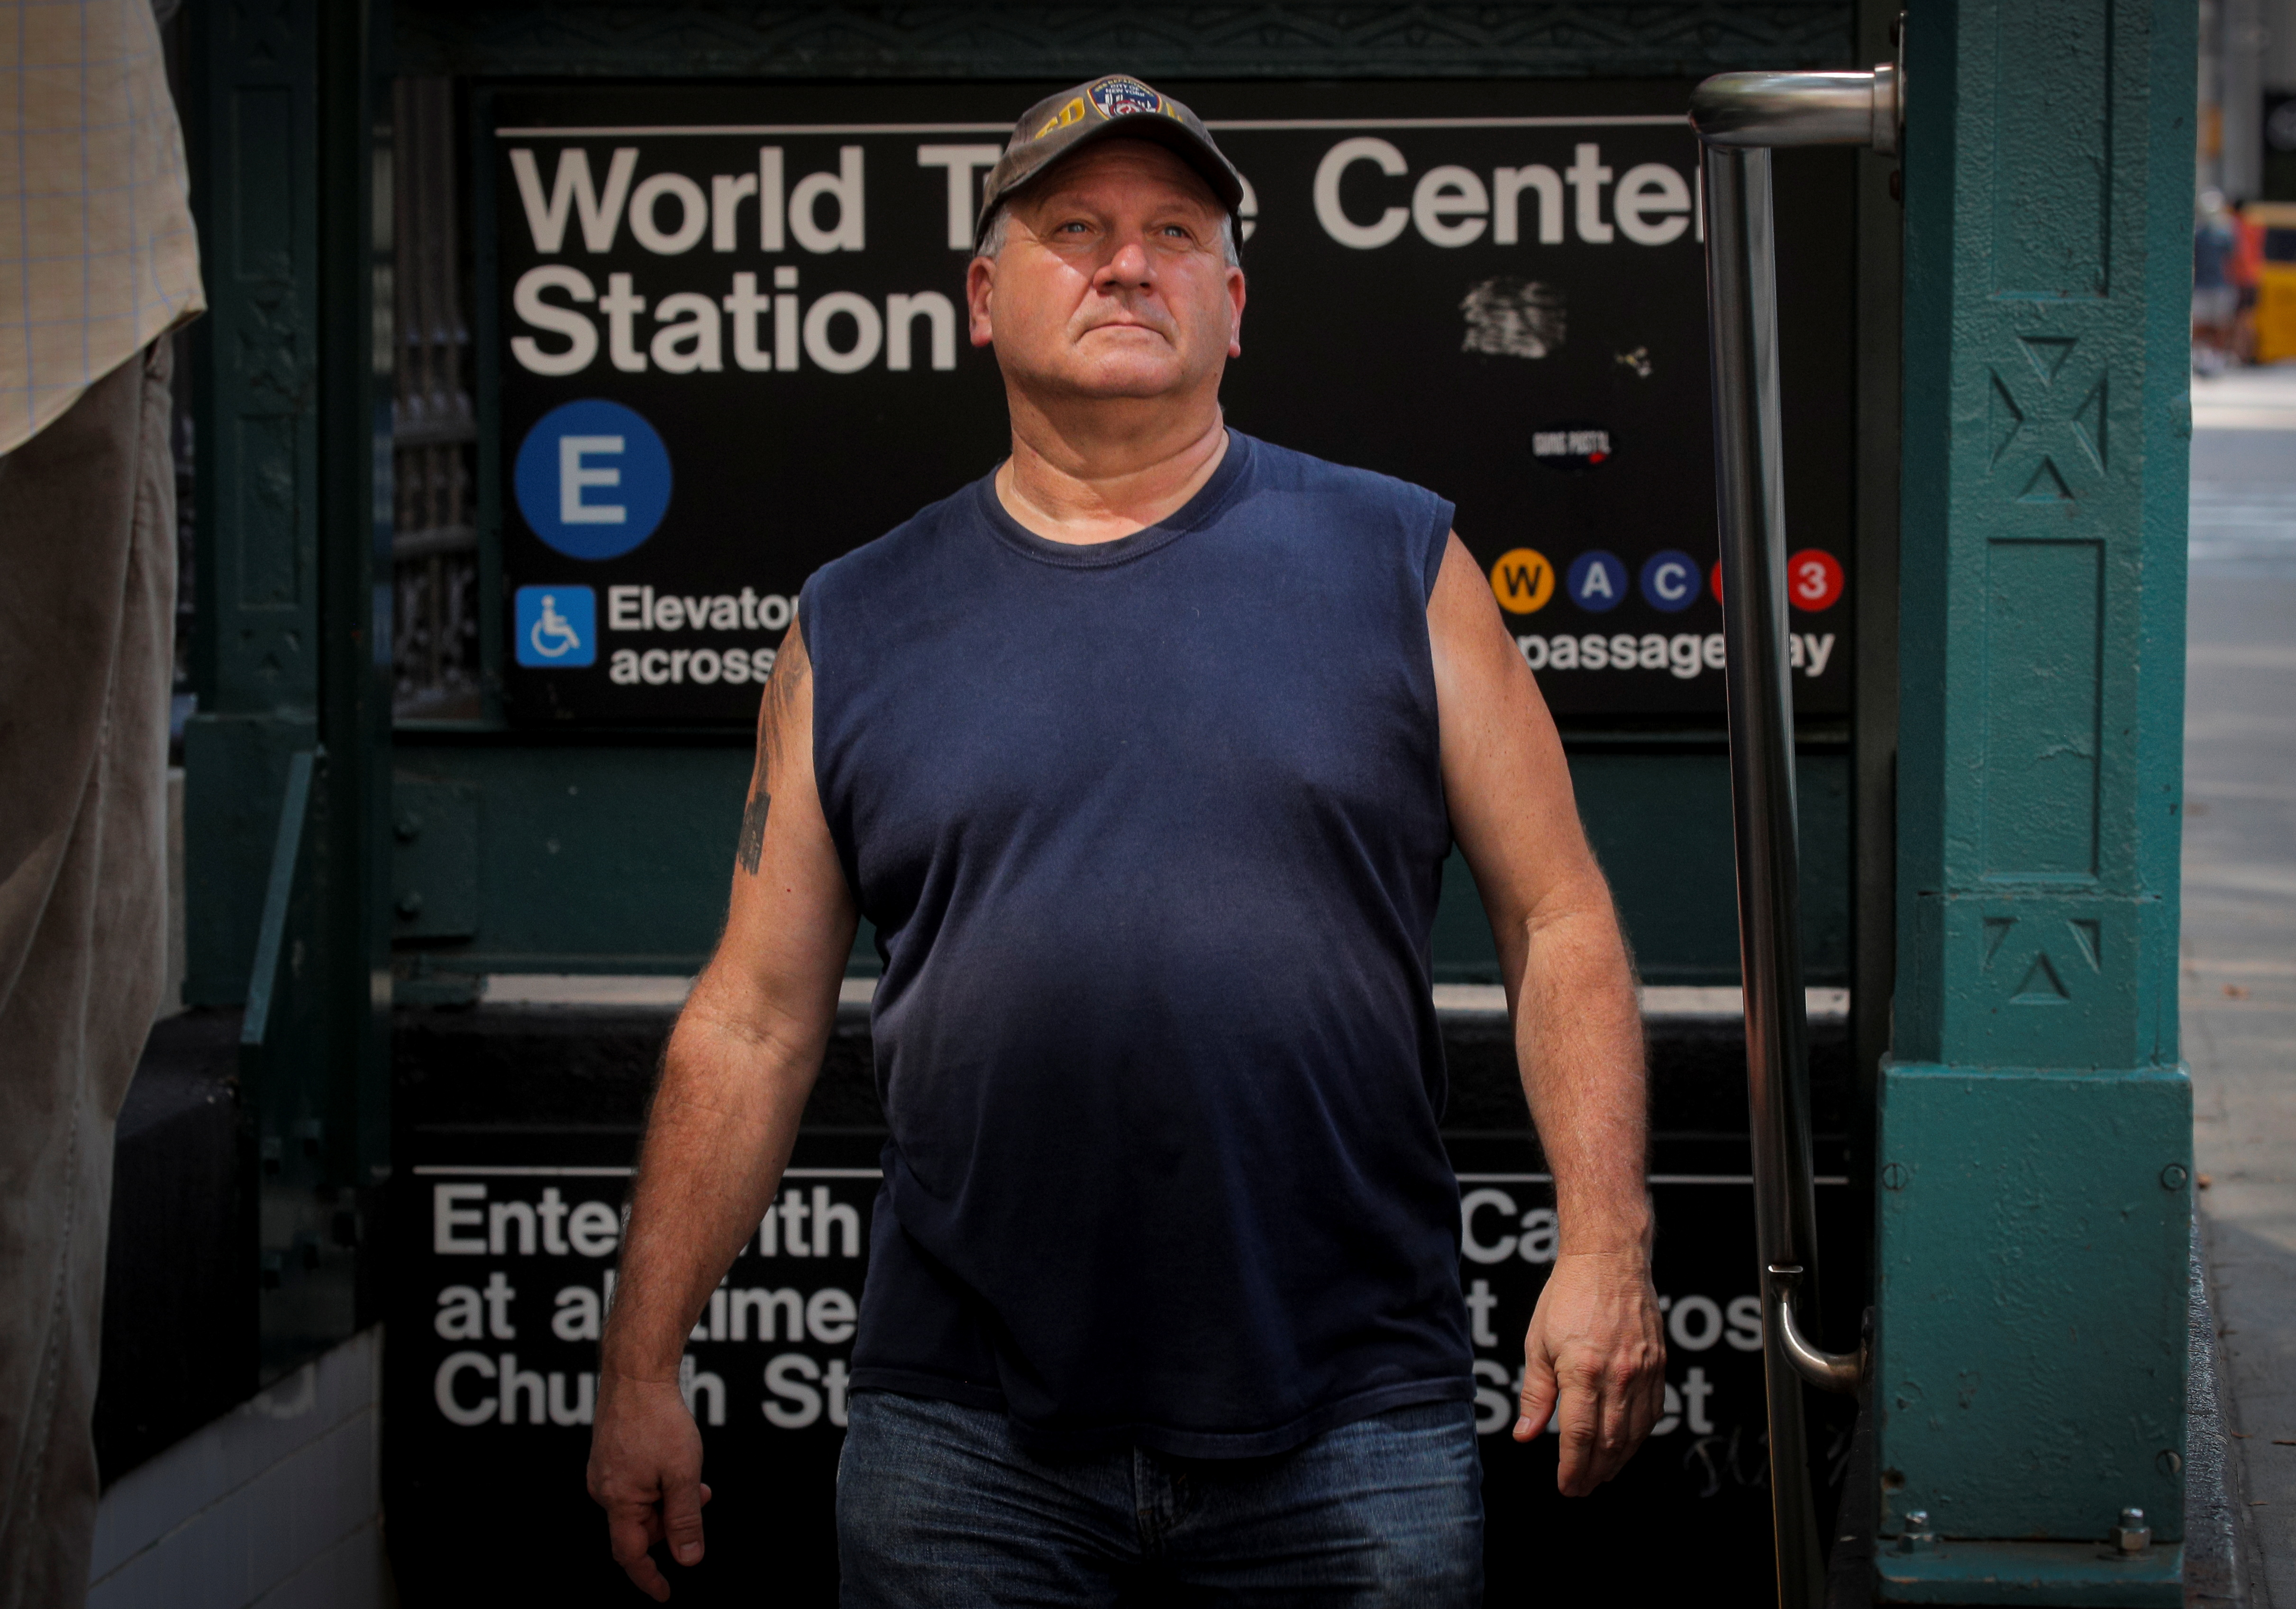 Tom Canavan, who worked on the 47th floor of 1 World Trade Center, exits the subway station near the spot where he was buried alive when the first tower fell on 9/11, during an interview near the National September 11 Memorial & Museum in New York City, New York, U.S., August 25, 2021.  REUTERS/Brendan McDermid